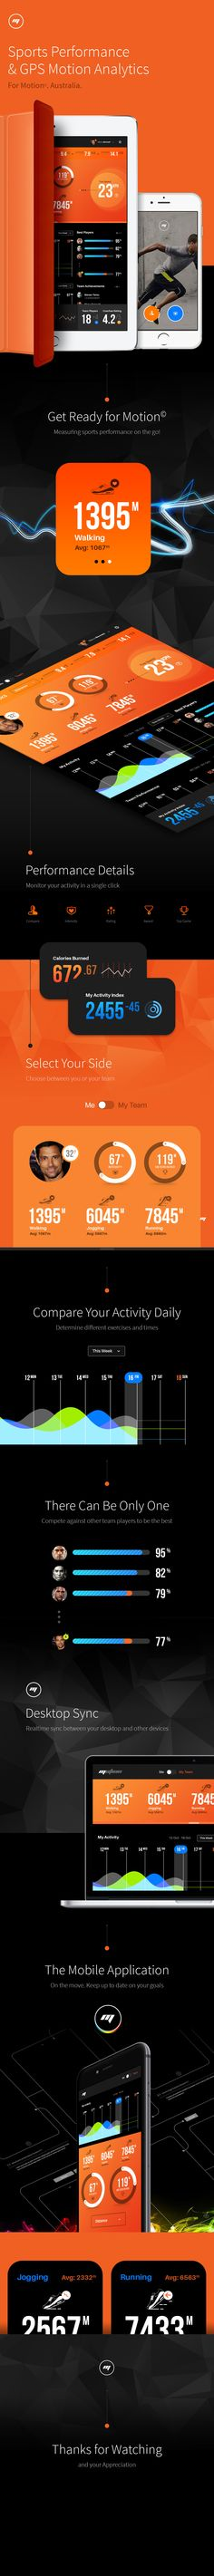 Dashboard for Sports Performance - MOTION on Behance